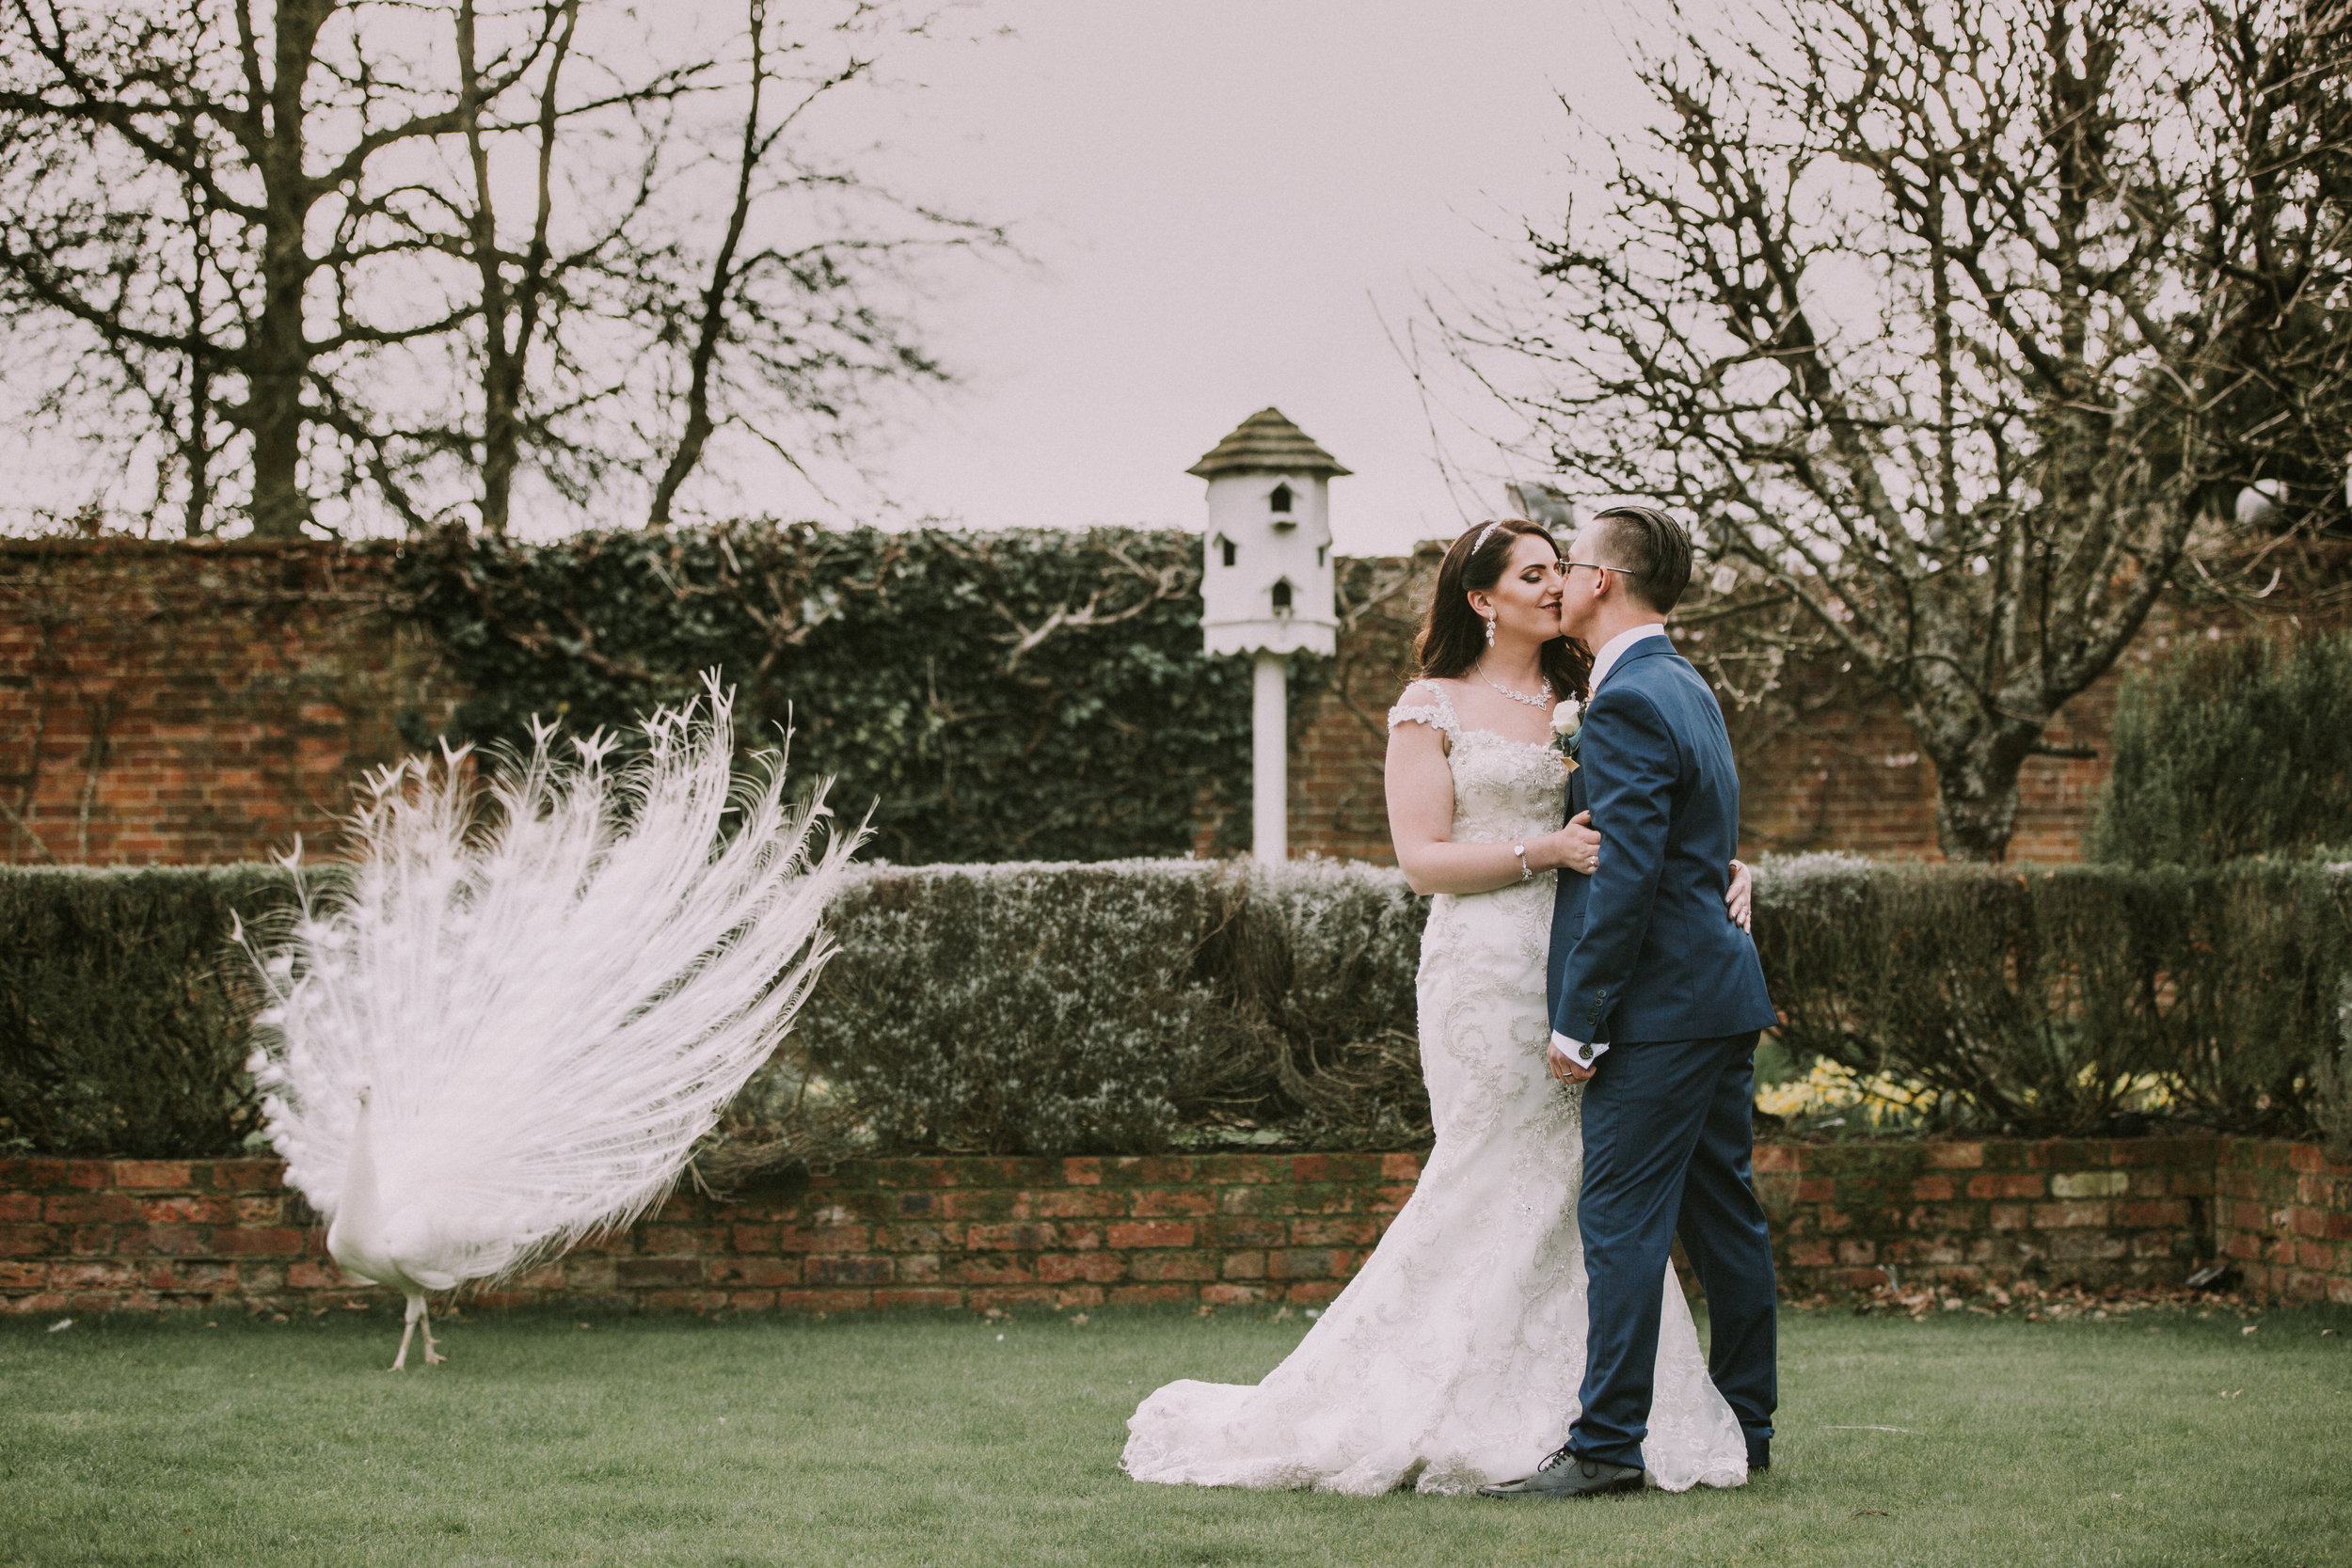 northbrook-park-farnham-hamnpshire-winter-spring-wedding-photography-couple-portrait-46